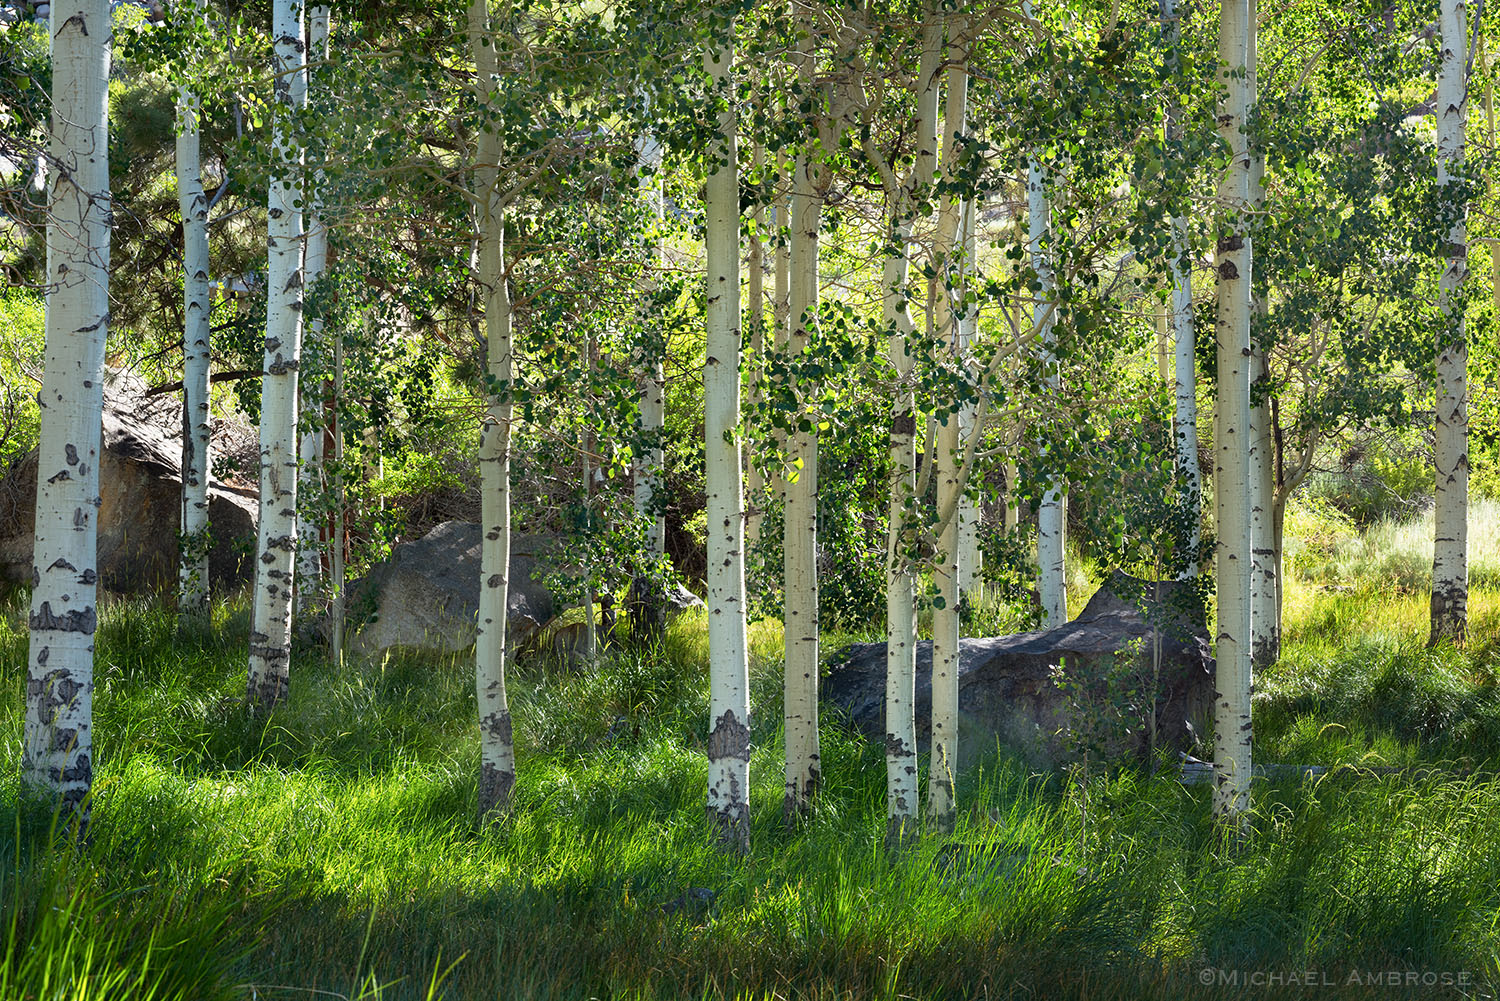 Springtime in the Eastern Sierra can be lush and green like this scene in the Mono Basin.